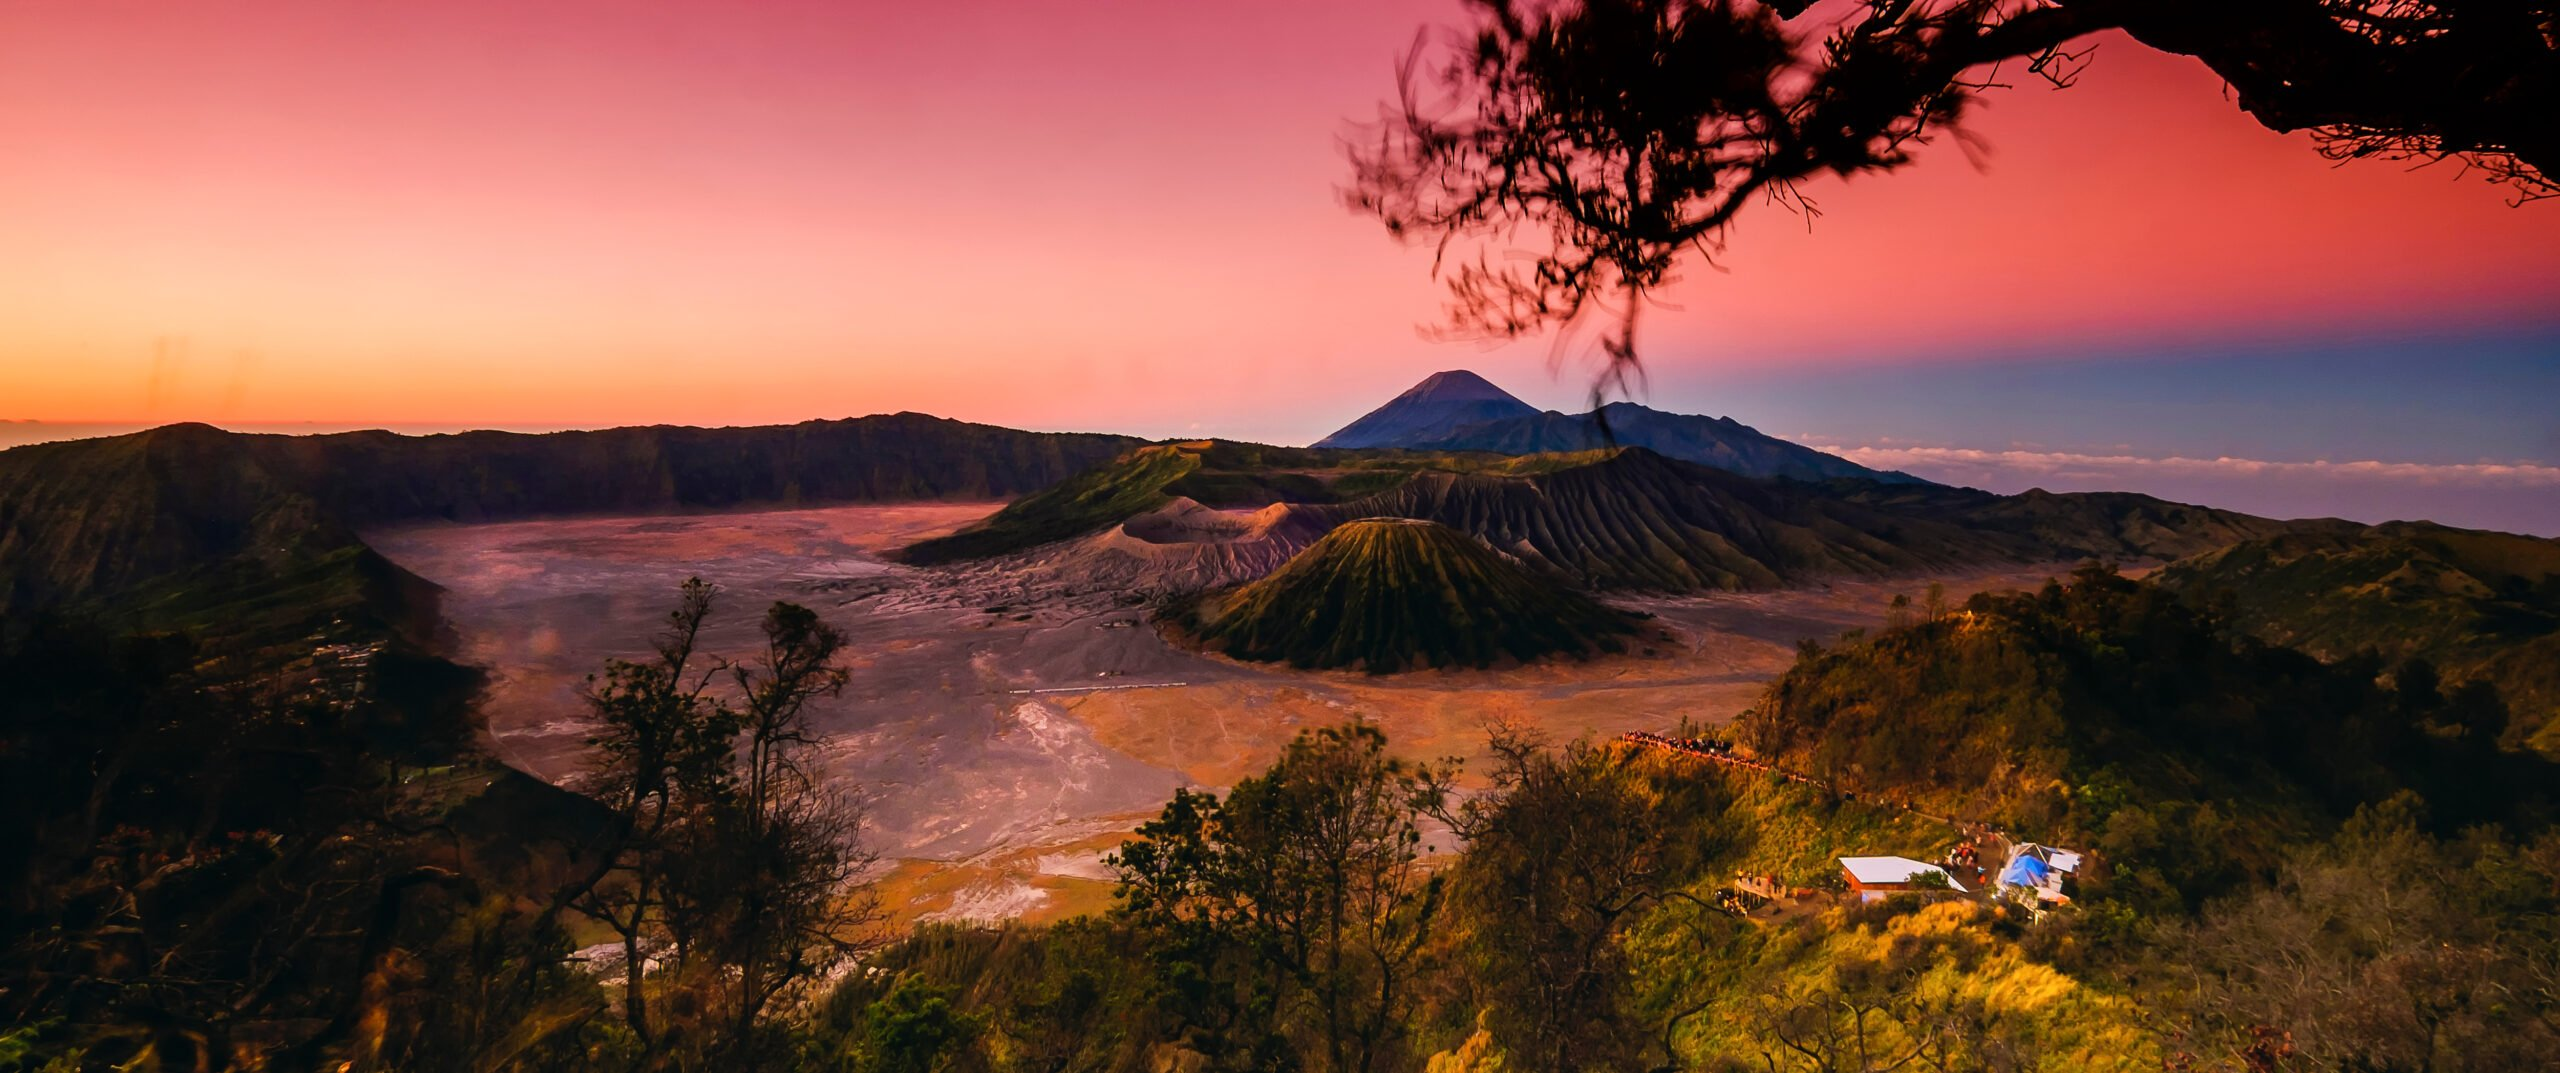 Enjoy The Breathtaking Scene Of Bromo Sunrise In Our Mount Bromo Sunrise & Ijen Blue Fire 2 Day V.i.p Tour